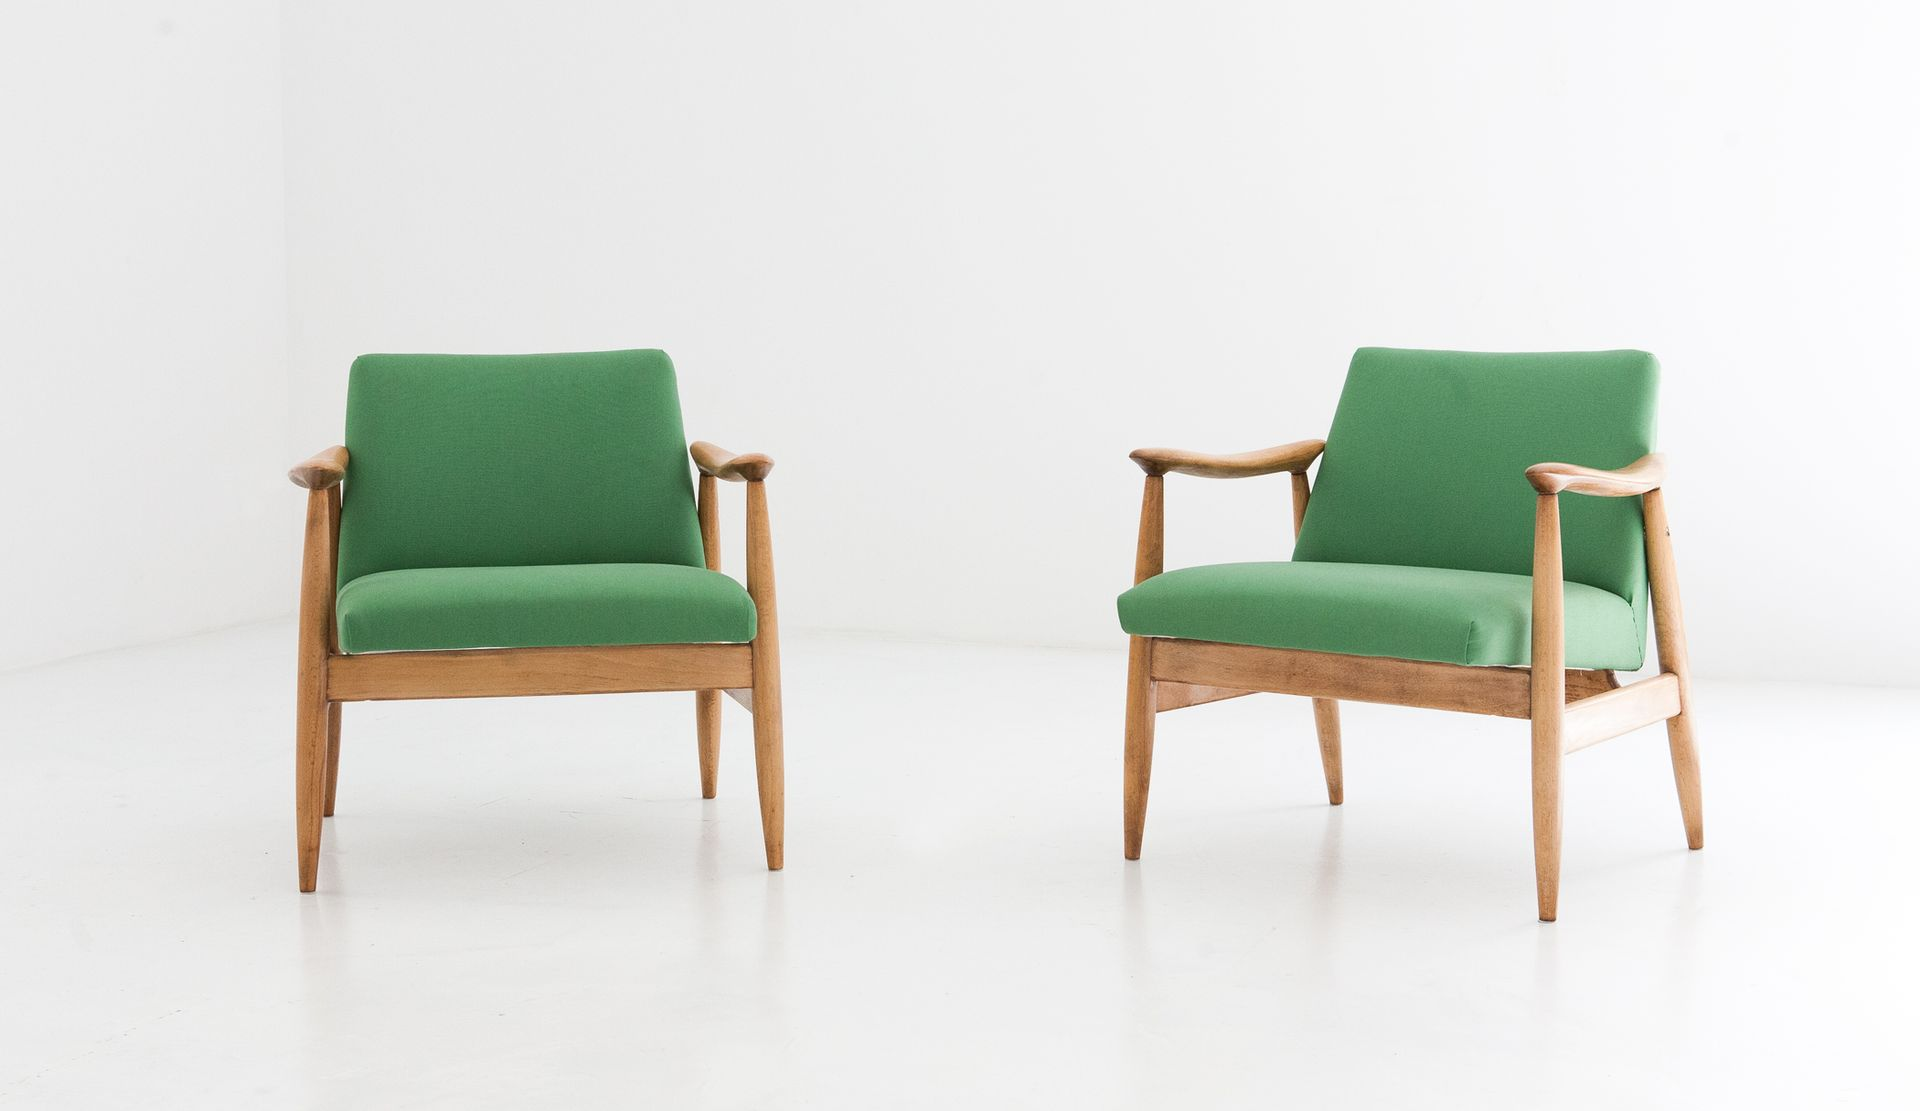 Danish Green Armchairs 1950s Set of 2 for sale at Pamono